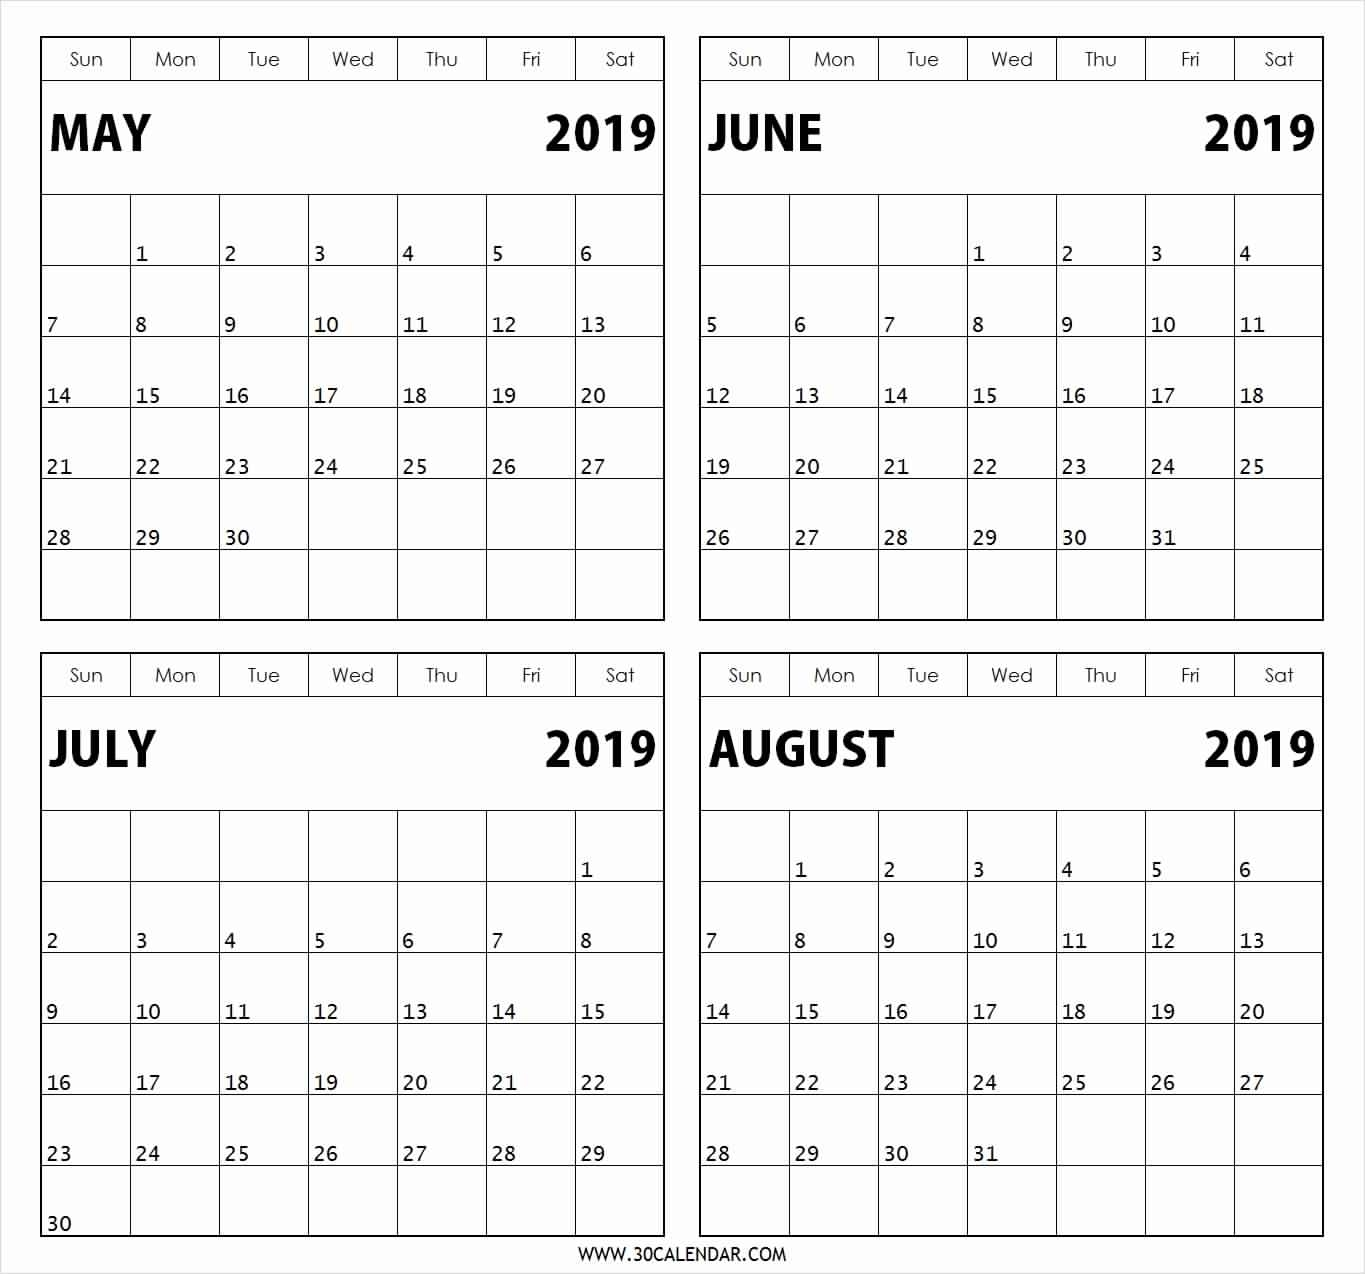 Free Printable 2019 4 Months Per Page Calendar Download | July 2018 with Printable Calendar 6 Months Per Page